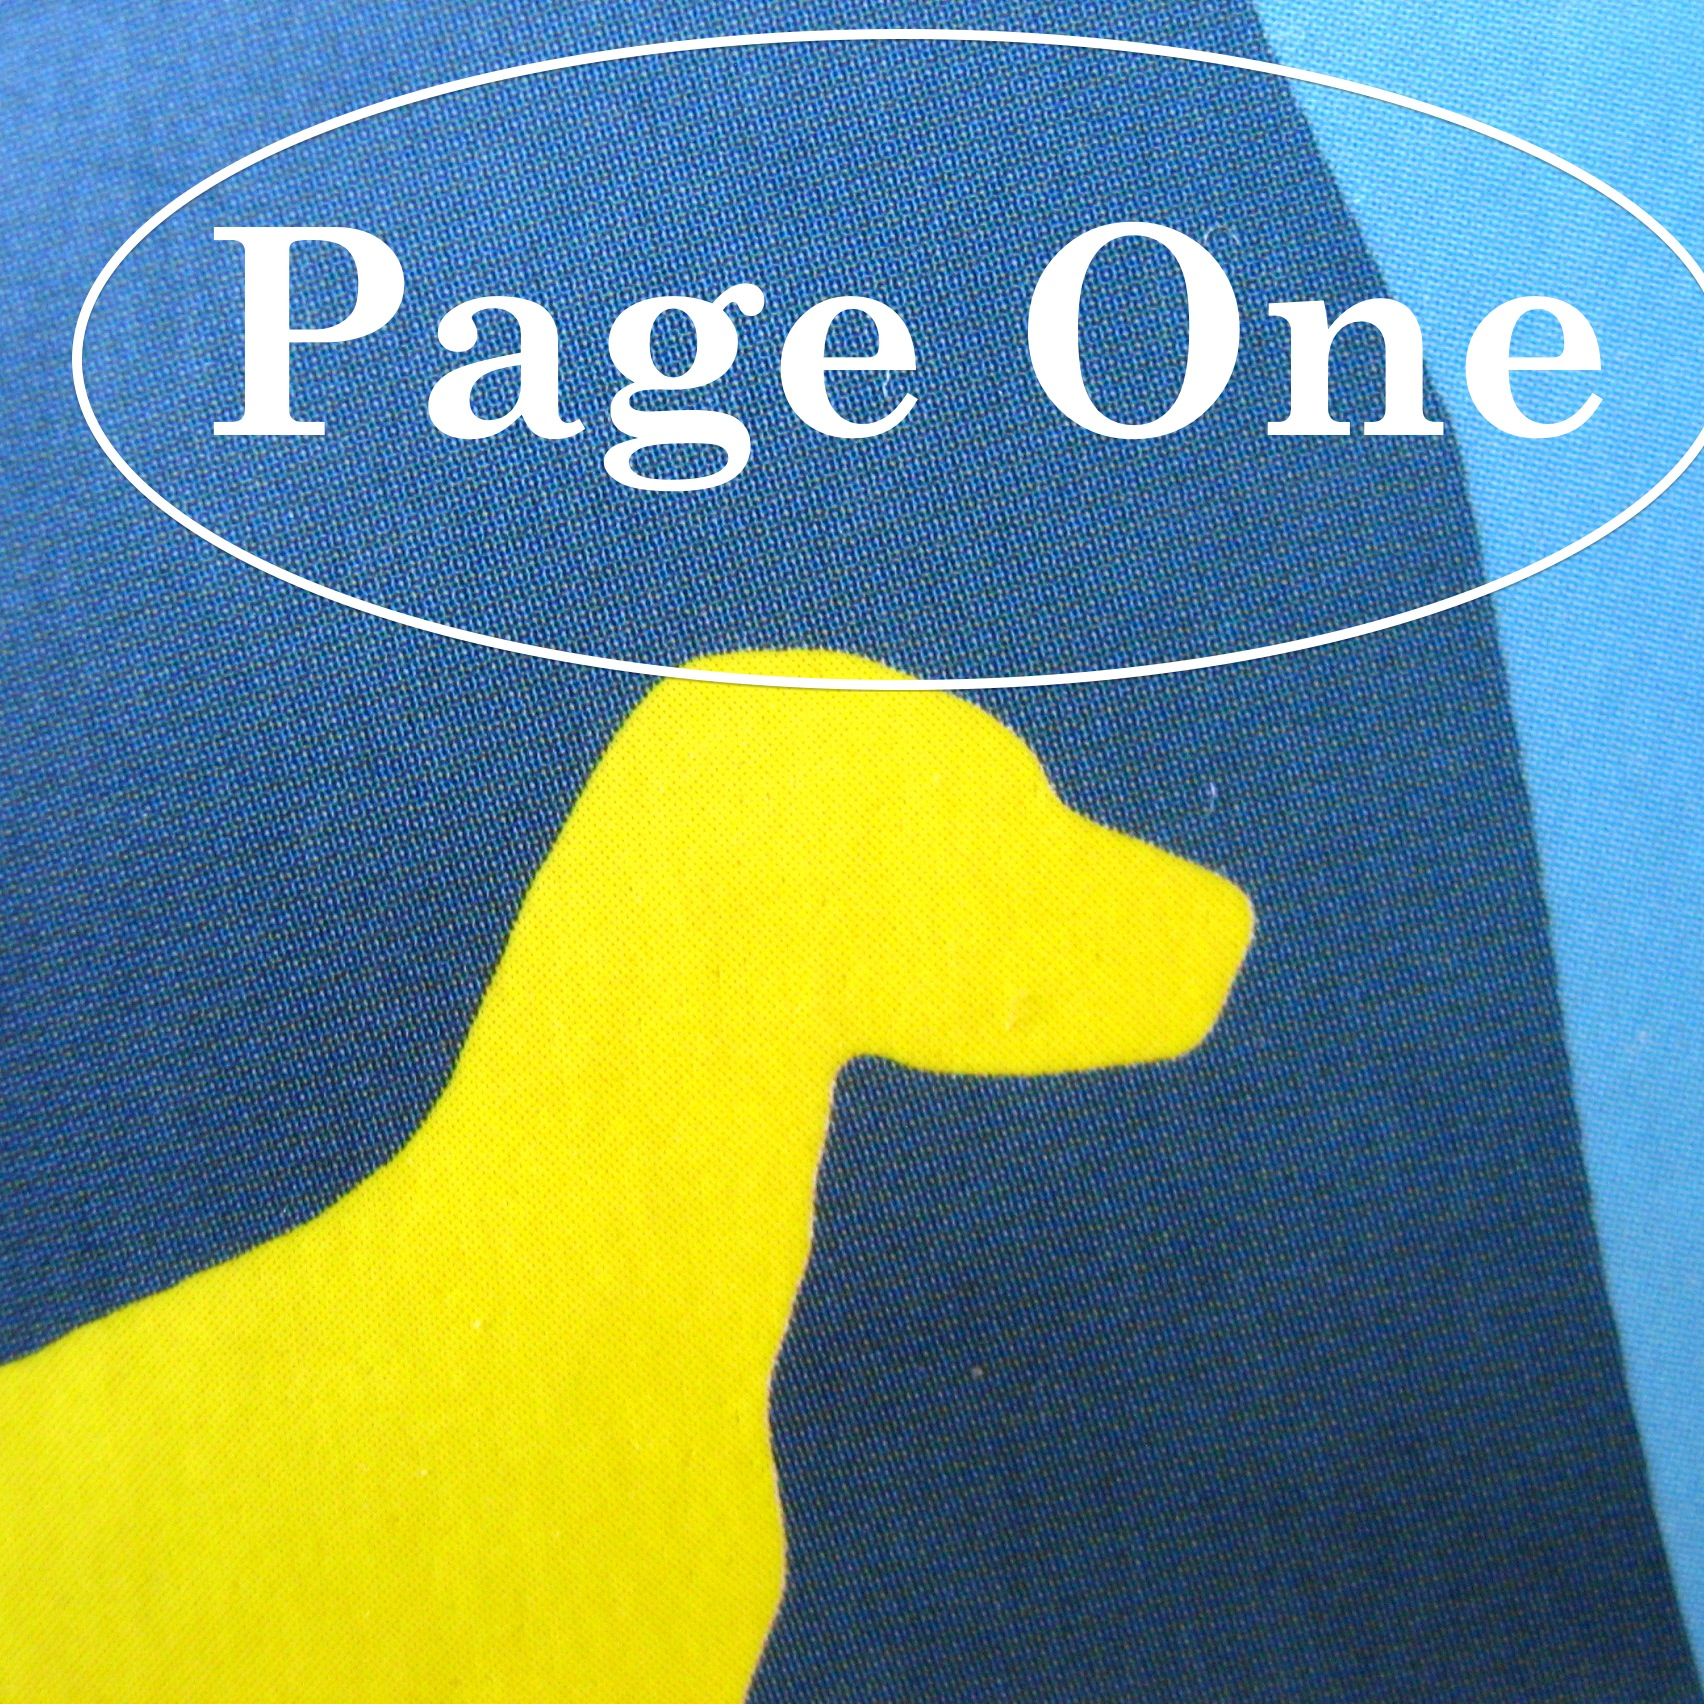 Episode image is a detail from the cover of  The Yellow Dog  by Georges Simenon, published in 2006 by Penguin Red Classics; cover artwork by David Pearson.